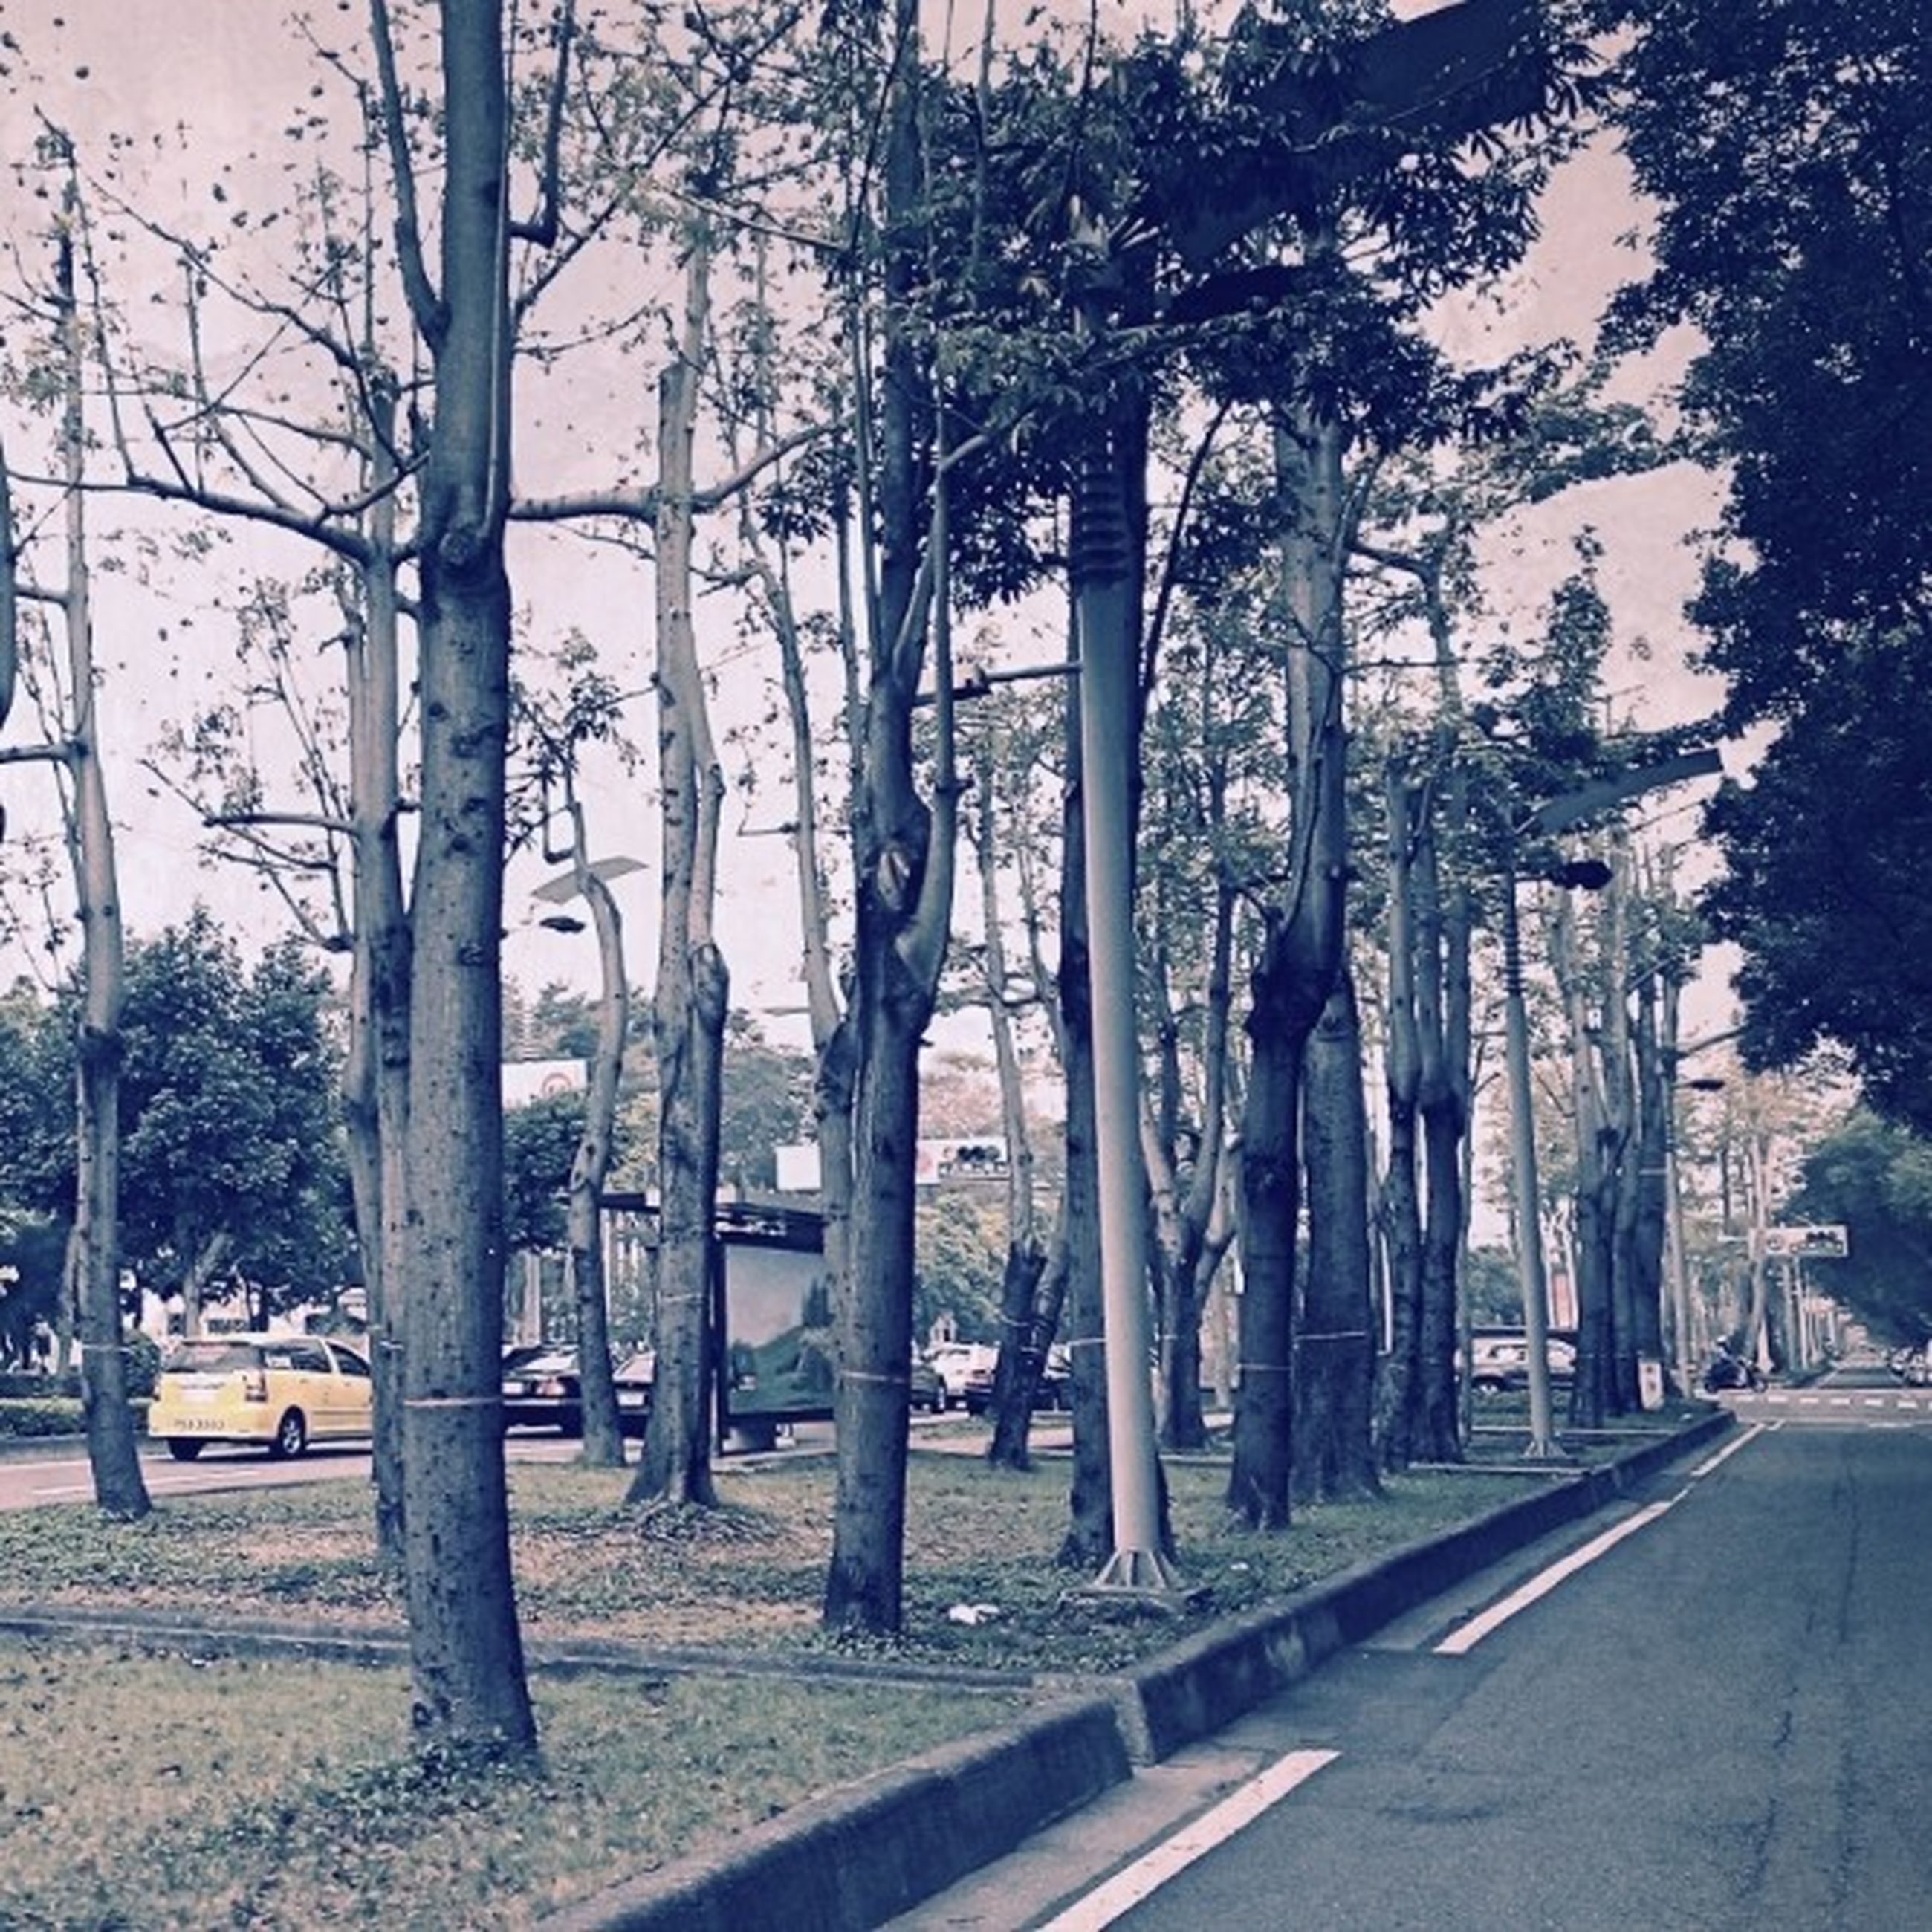 tree, road, transportation, street, tree trunk, treelined, built structure, city, building exterior, architecture, street light, the way forward, incidental people, day, outdoors, growth, in a row, sidewalk, car, bare tree